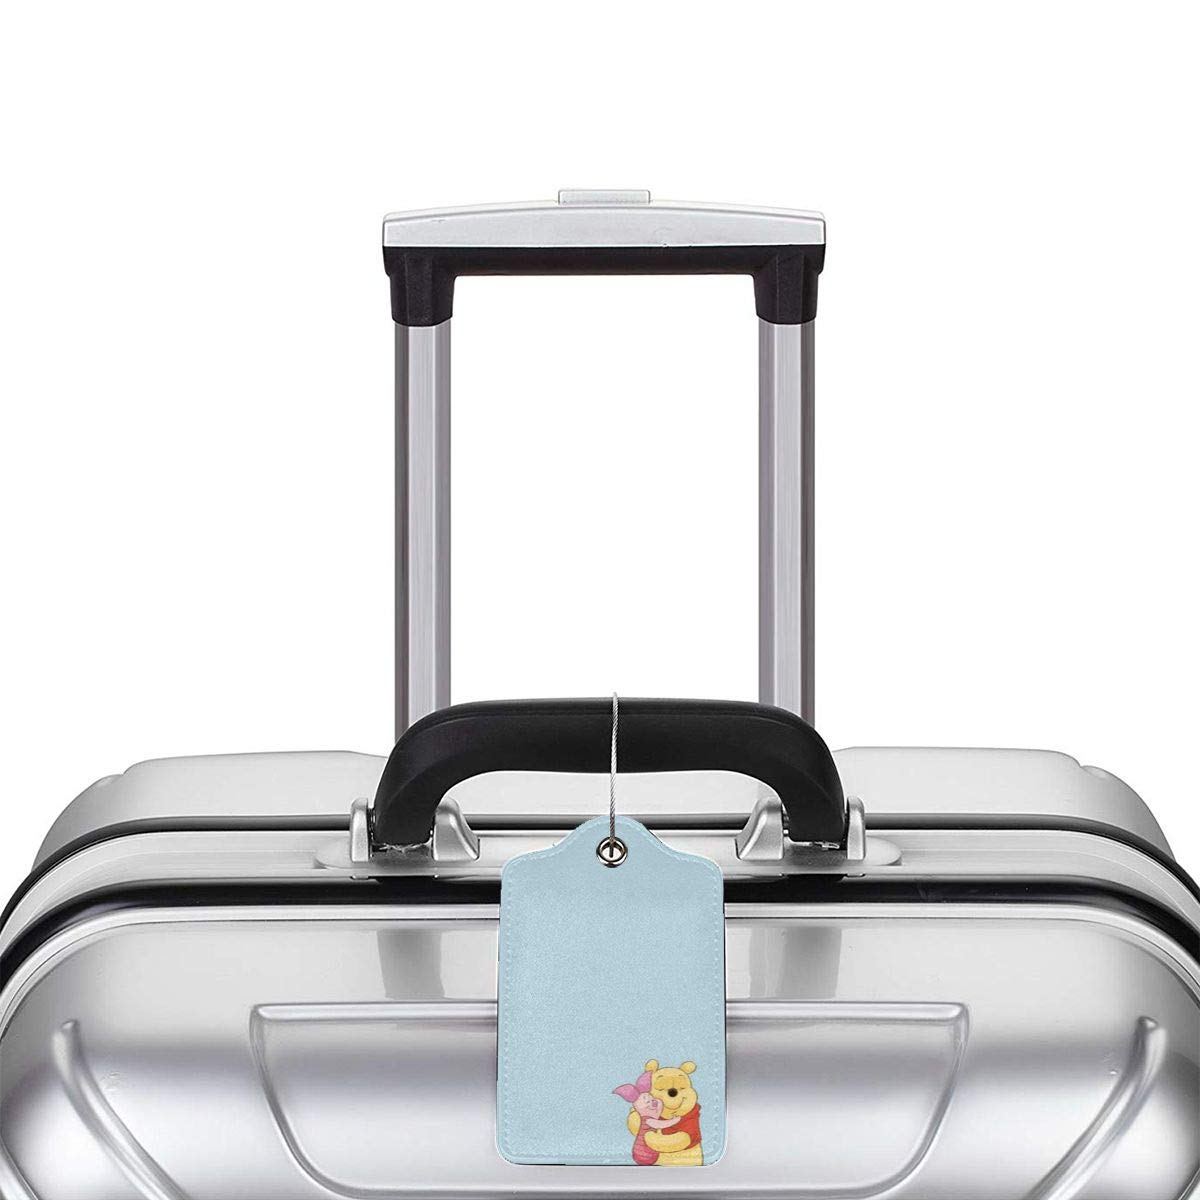 Suit For Travel,Vacation Fashion Edward Pooh Soft Leather Luggage Tags With Privacy Cover 1-4 Pcs Choose